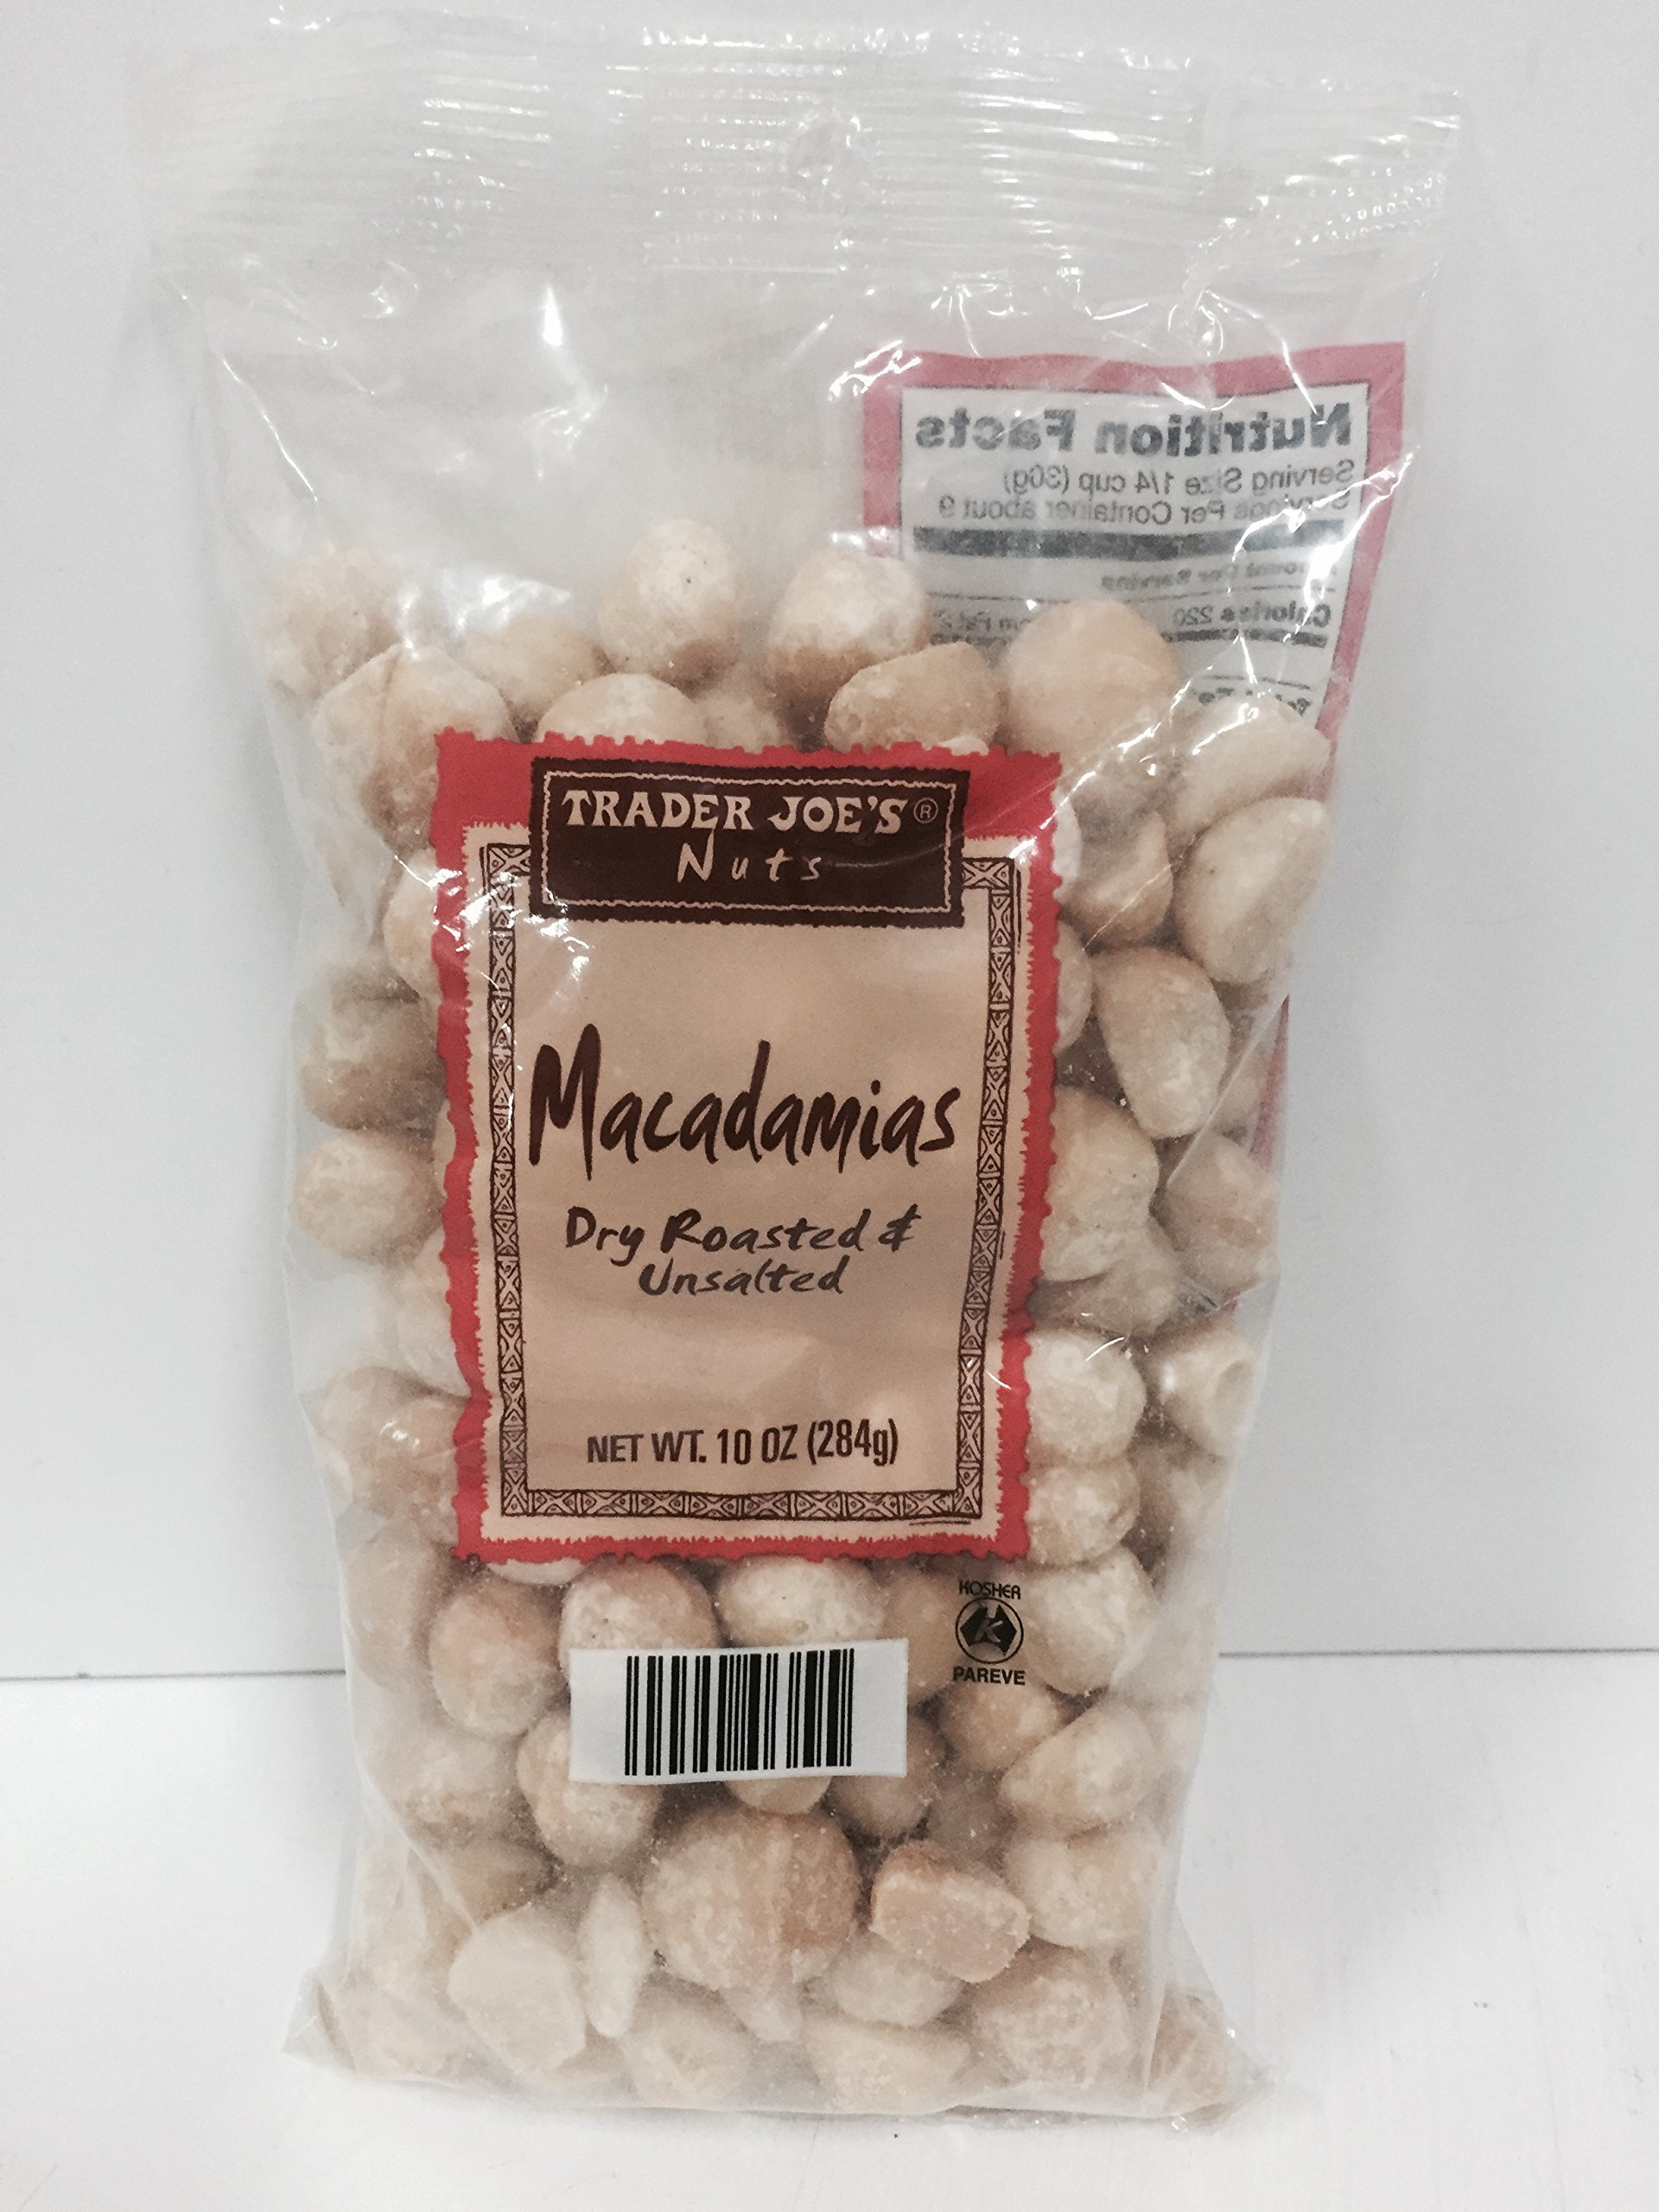 Trader Joe's Macadamias Dry Roasted & Unsalted (Pack of 2)